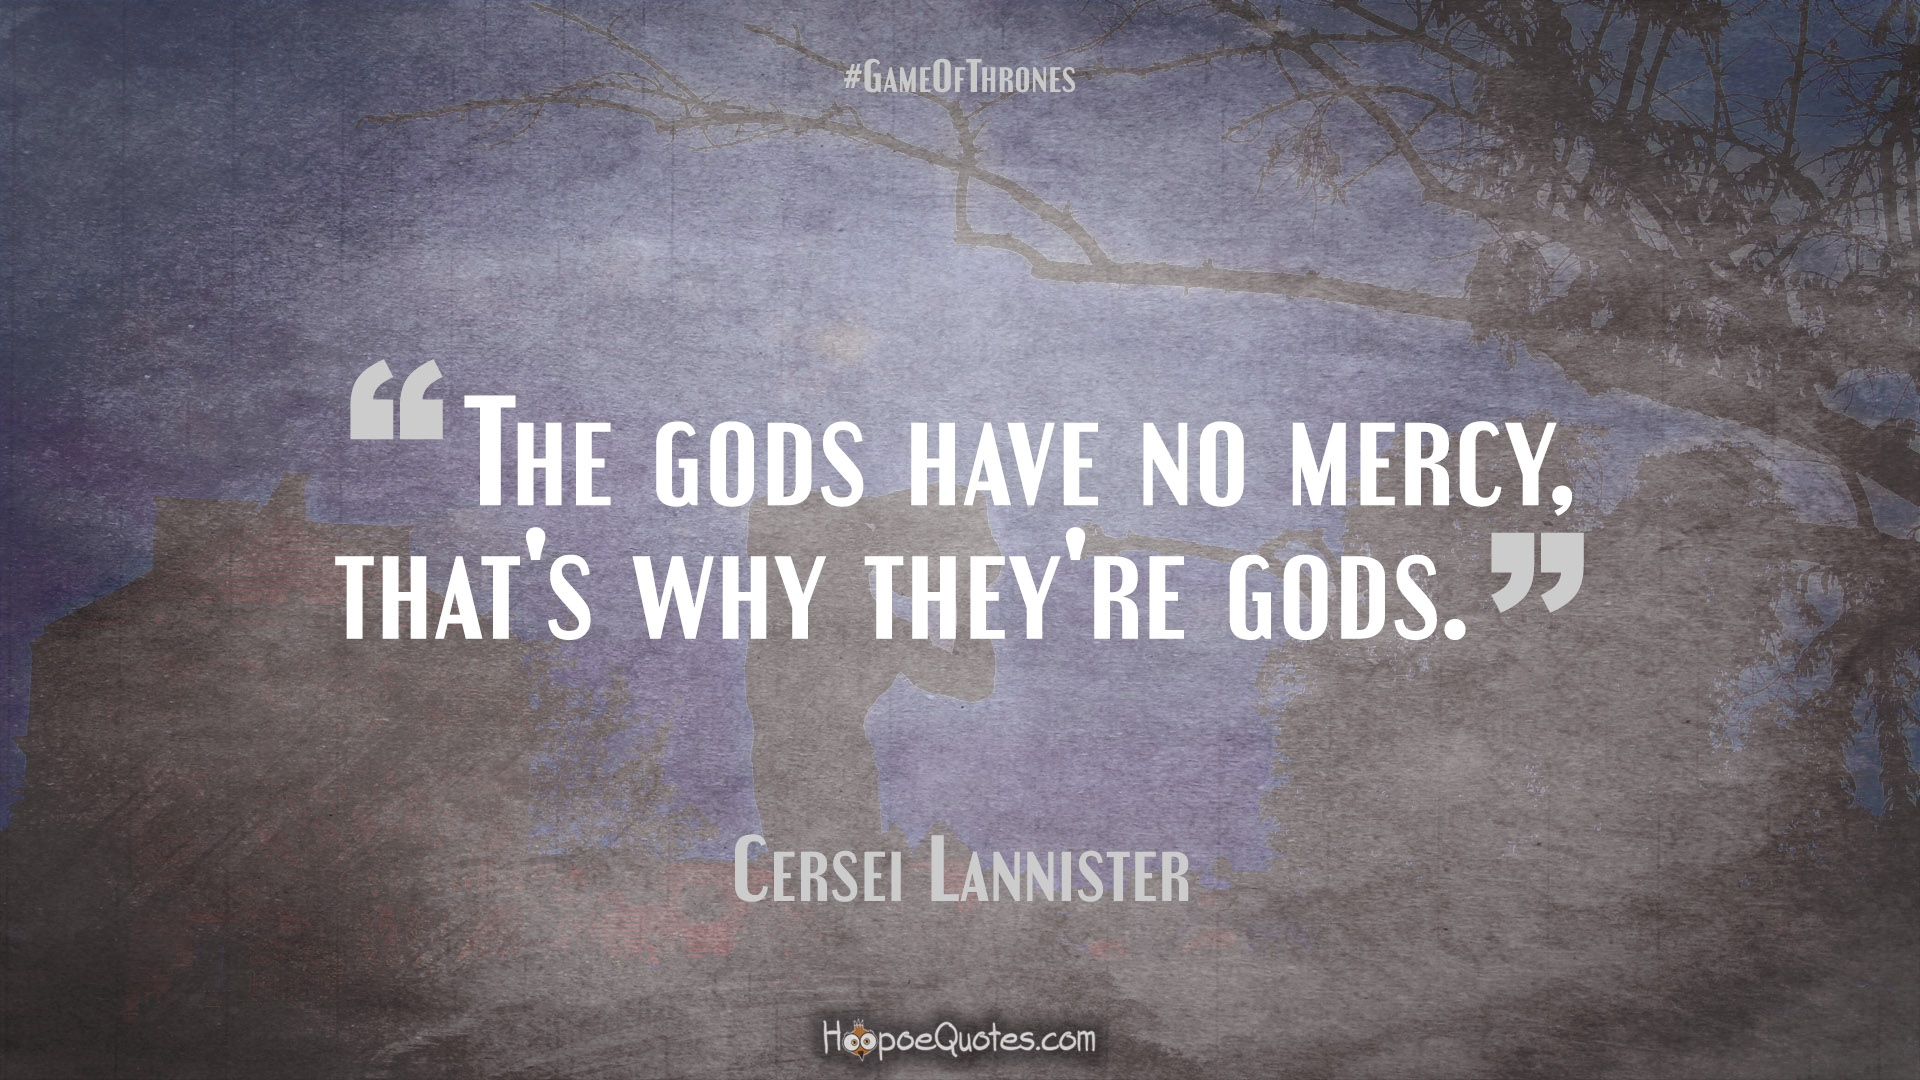 God's Mercy Quotes The Gods Have No Mercy That's Why They're Gods Hoopoequotes